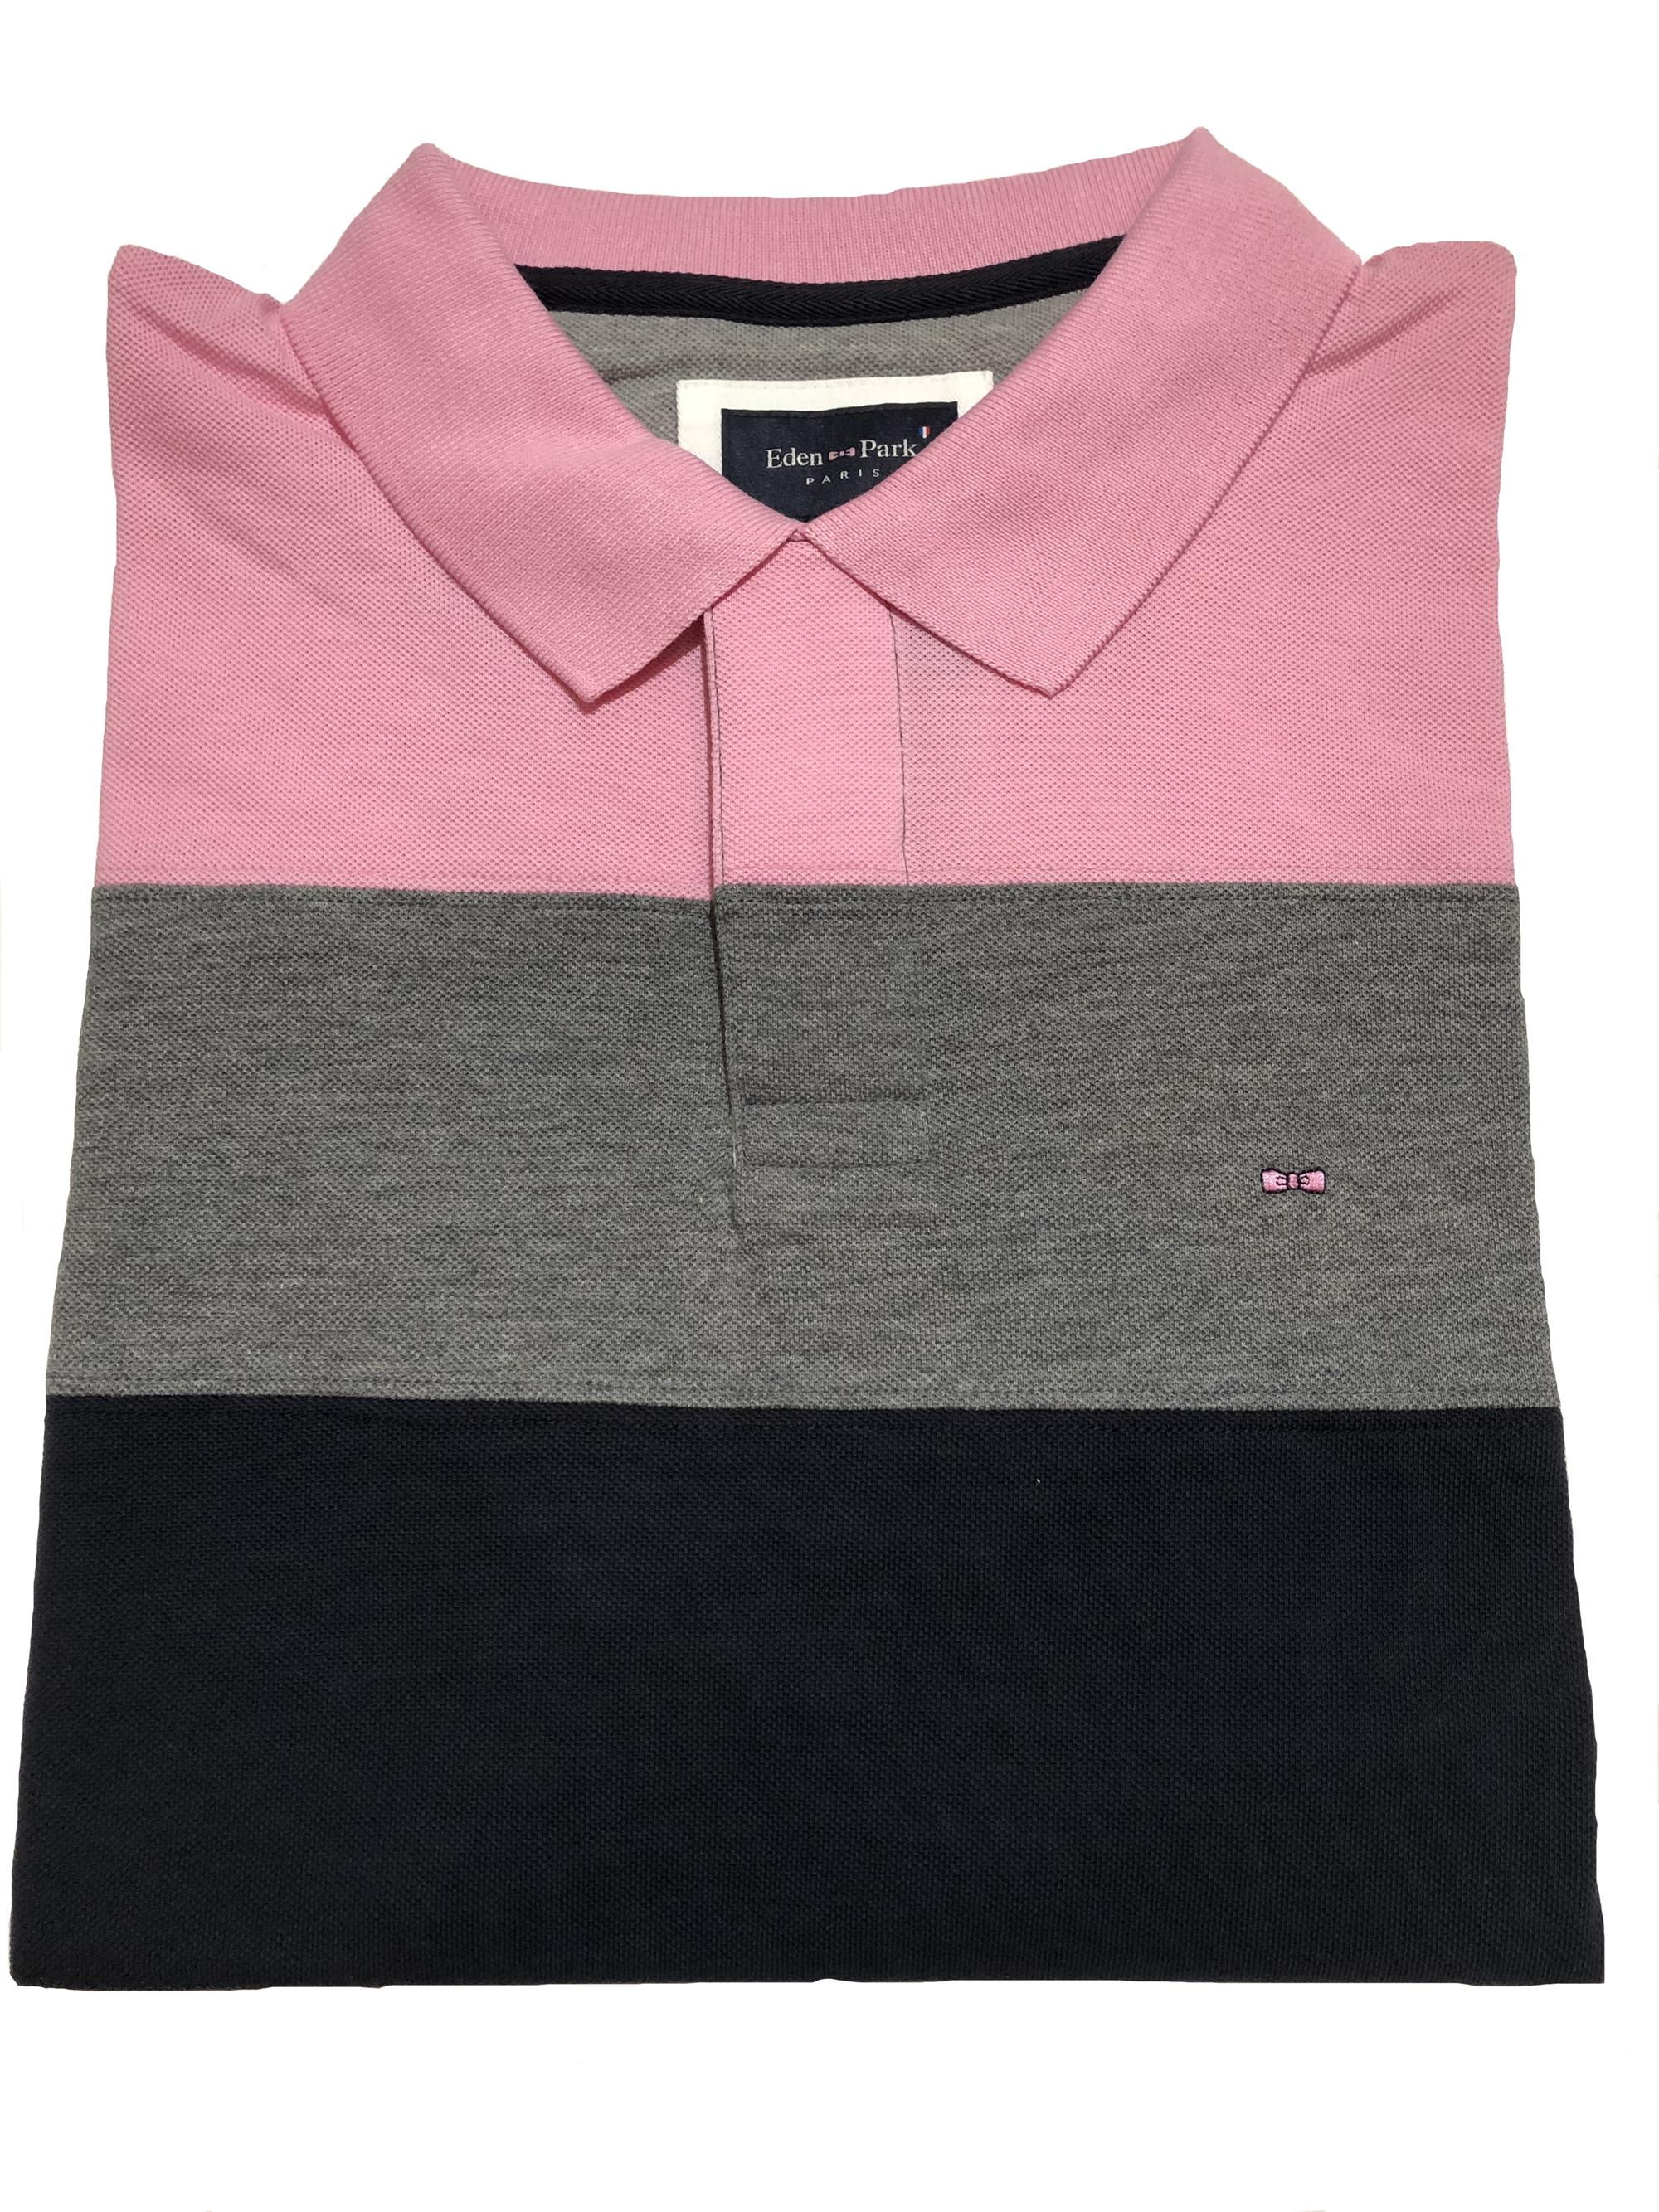 block striped polo shirt (pink/grey/navy)